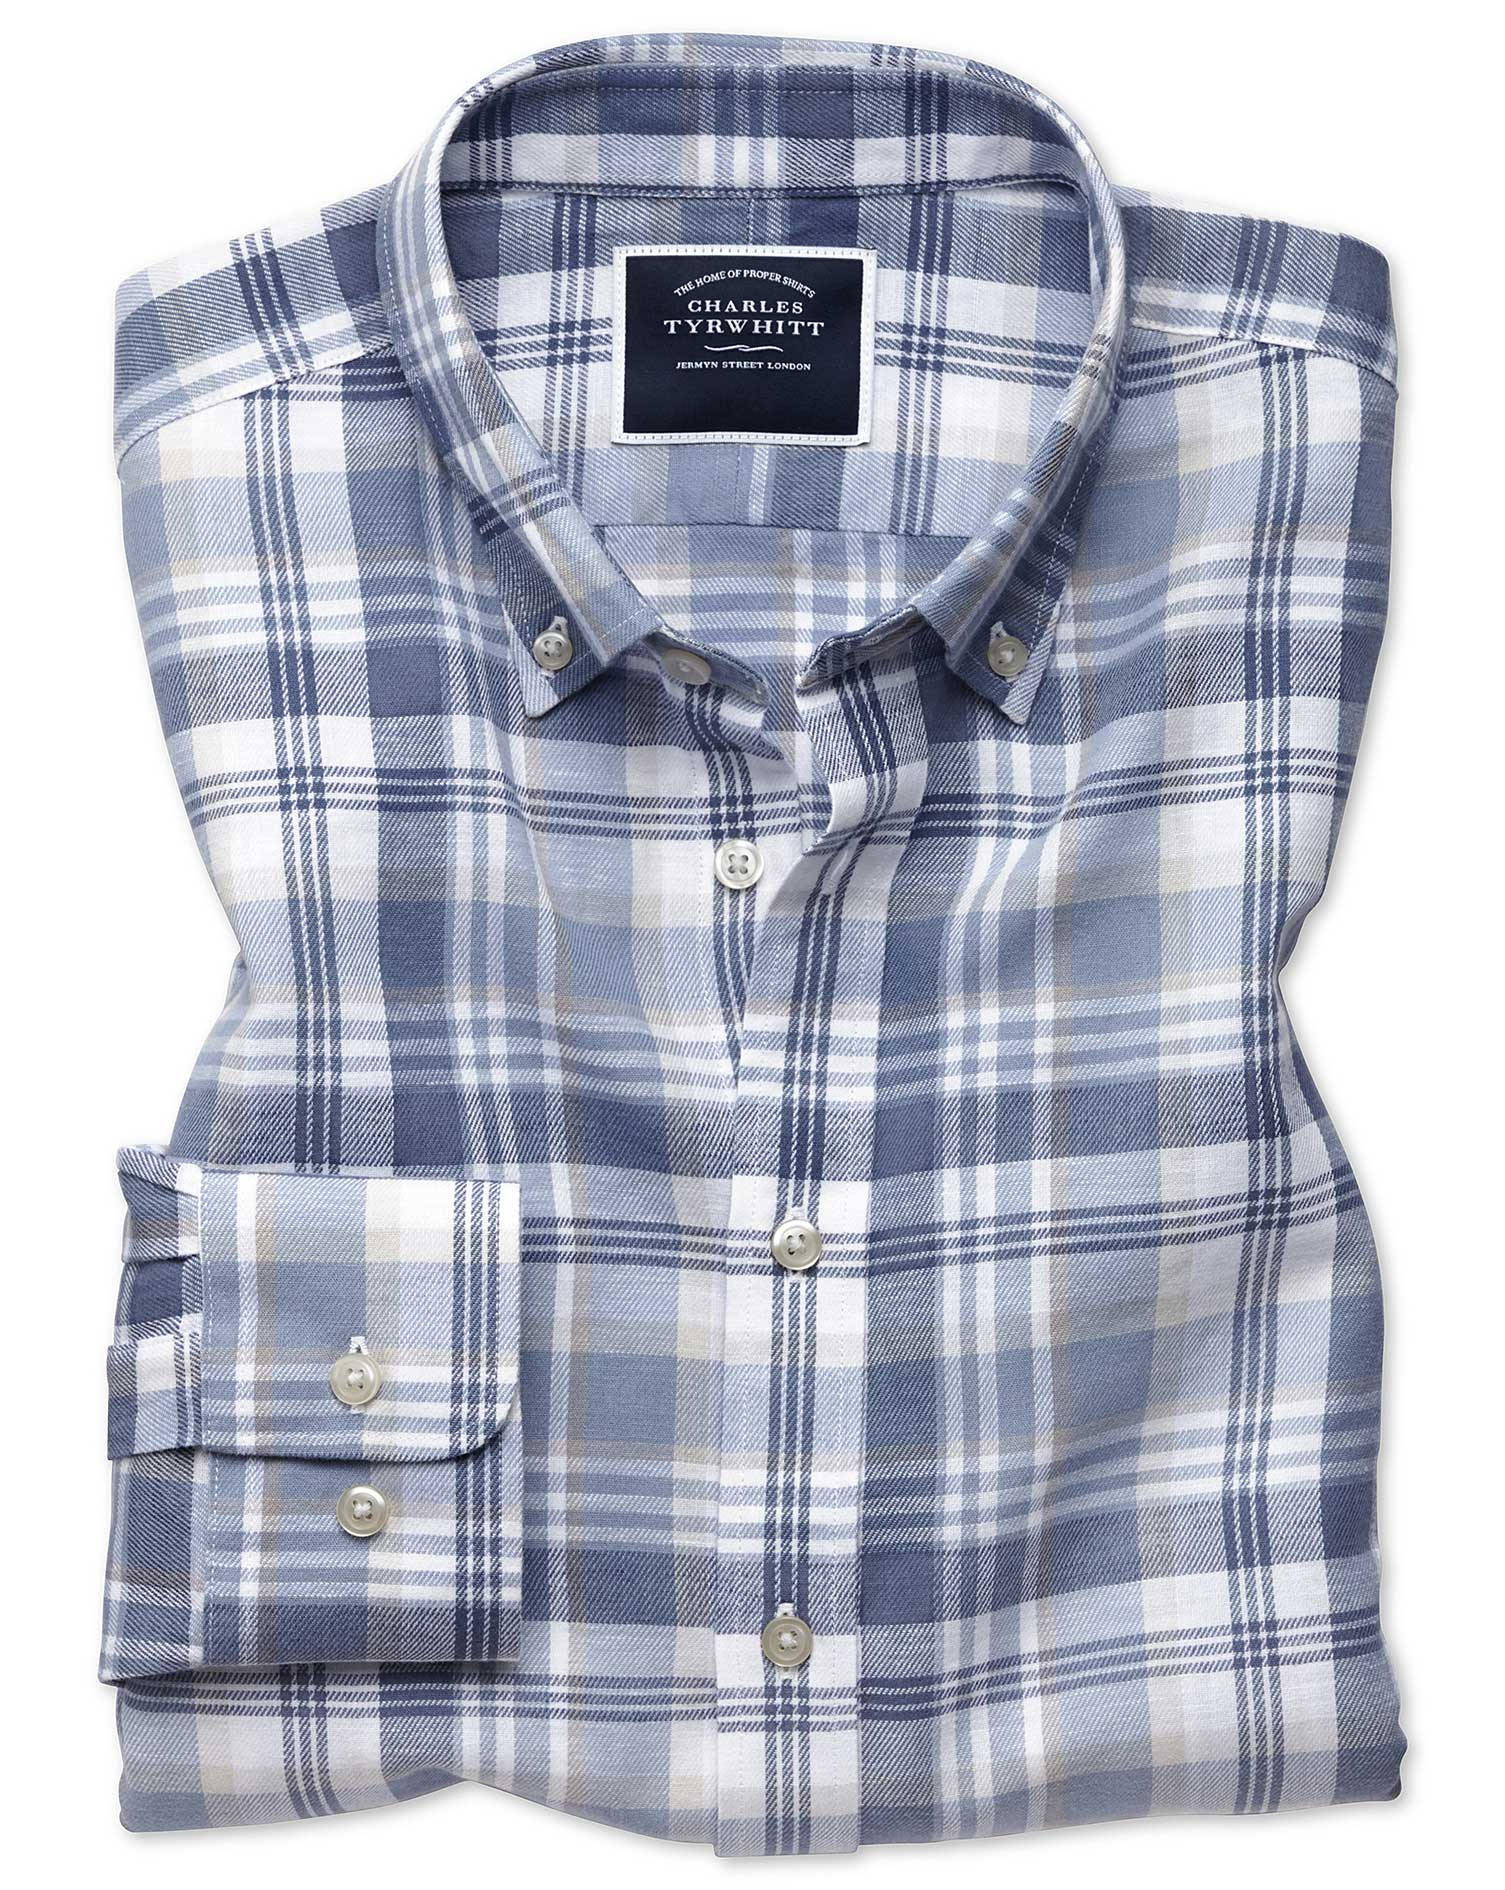 Classic Fit Blue and Grey Check Cotton Linen Twill Shirt Single Cuff Size Large by Charles Tyrwhitt